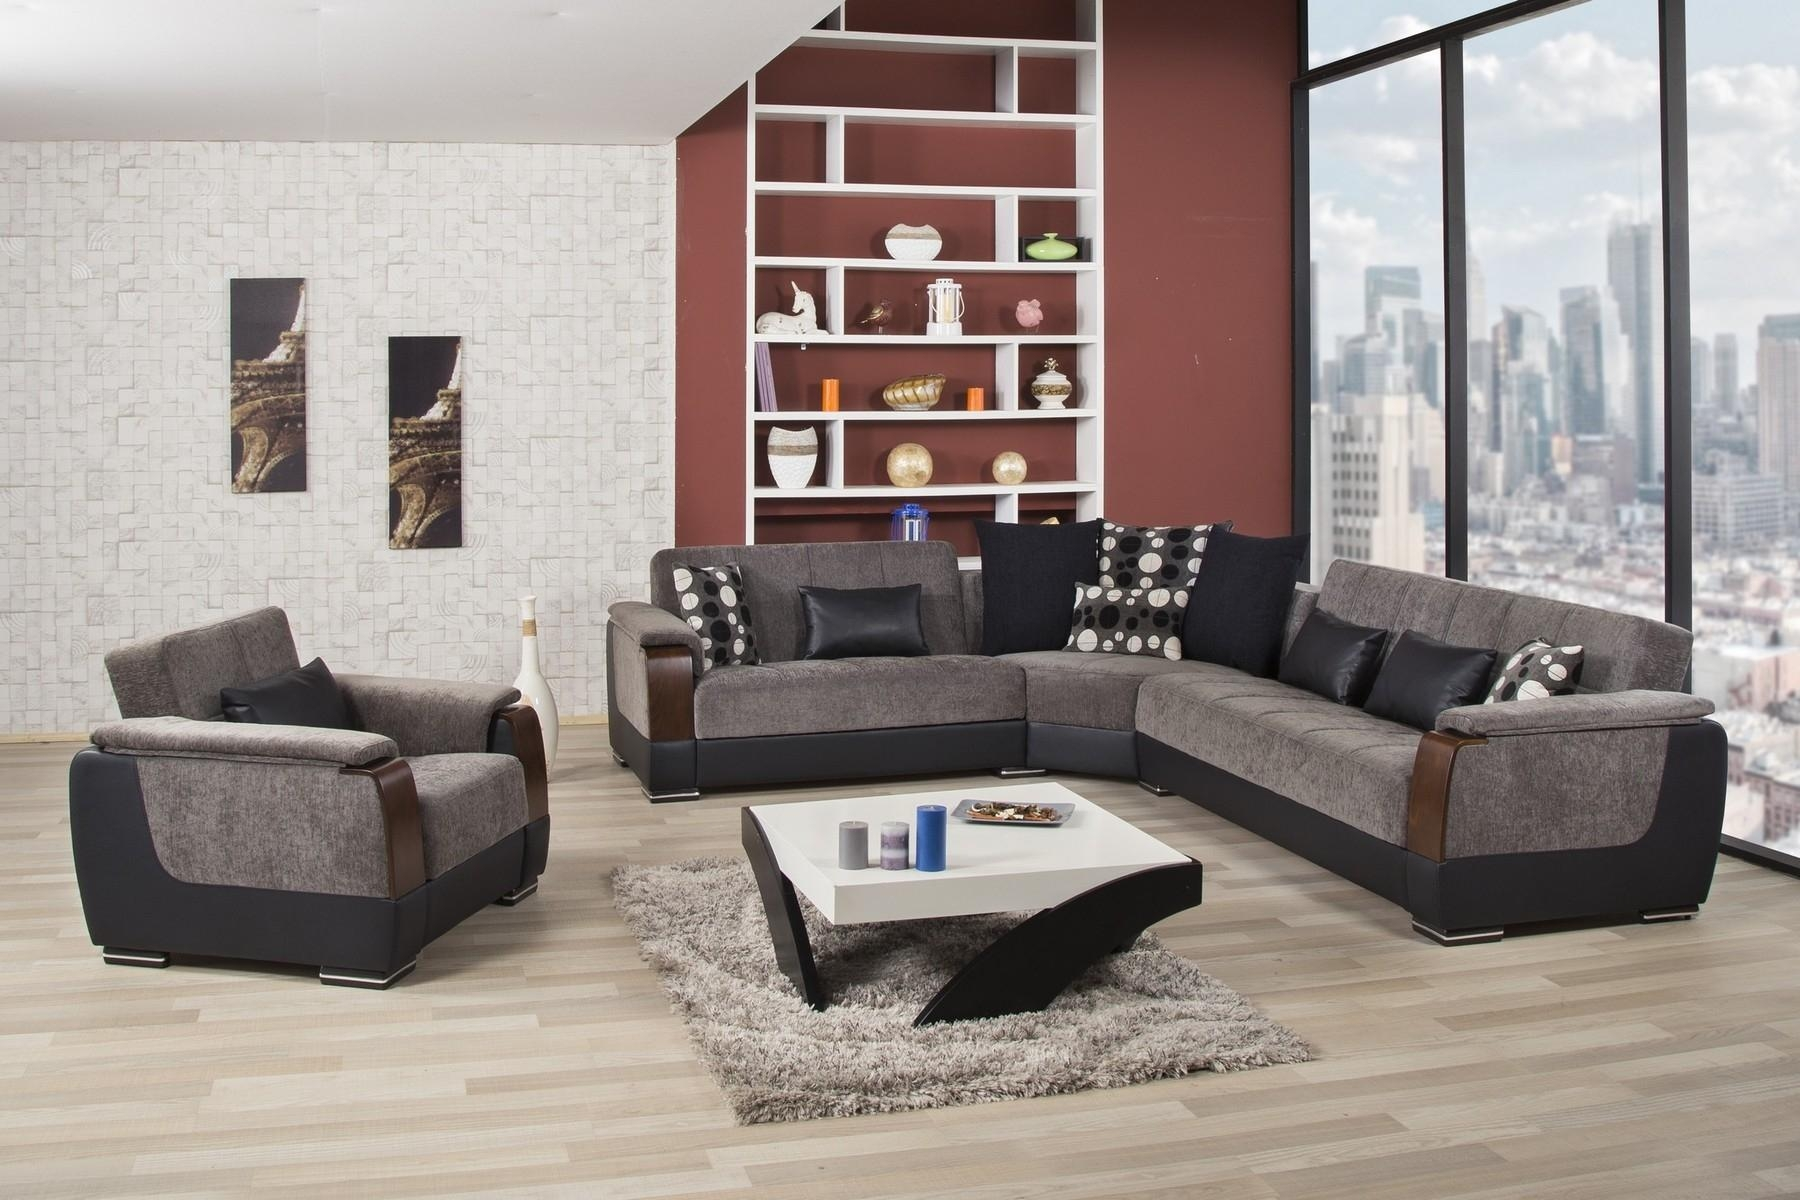 Furniture Home : Attractive Chocolate Brown Sectional Sofa With Within Chocolate Brown Sectional Sofa (View 15 of 15)